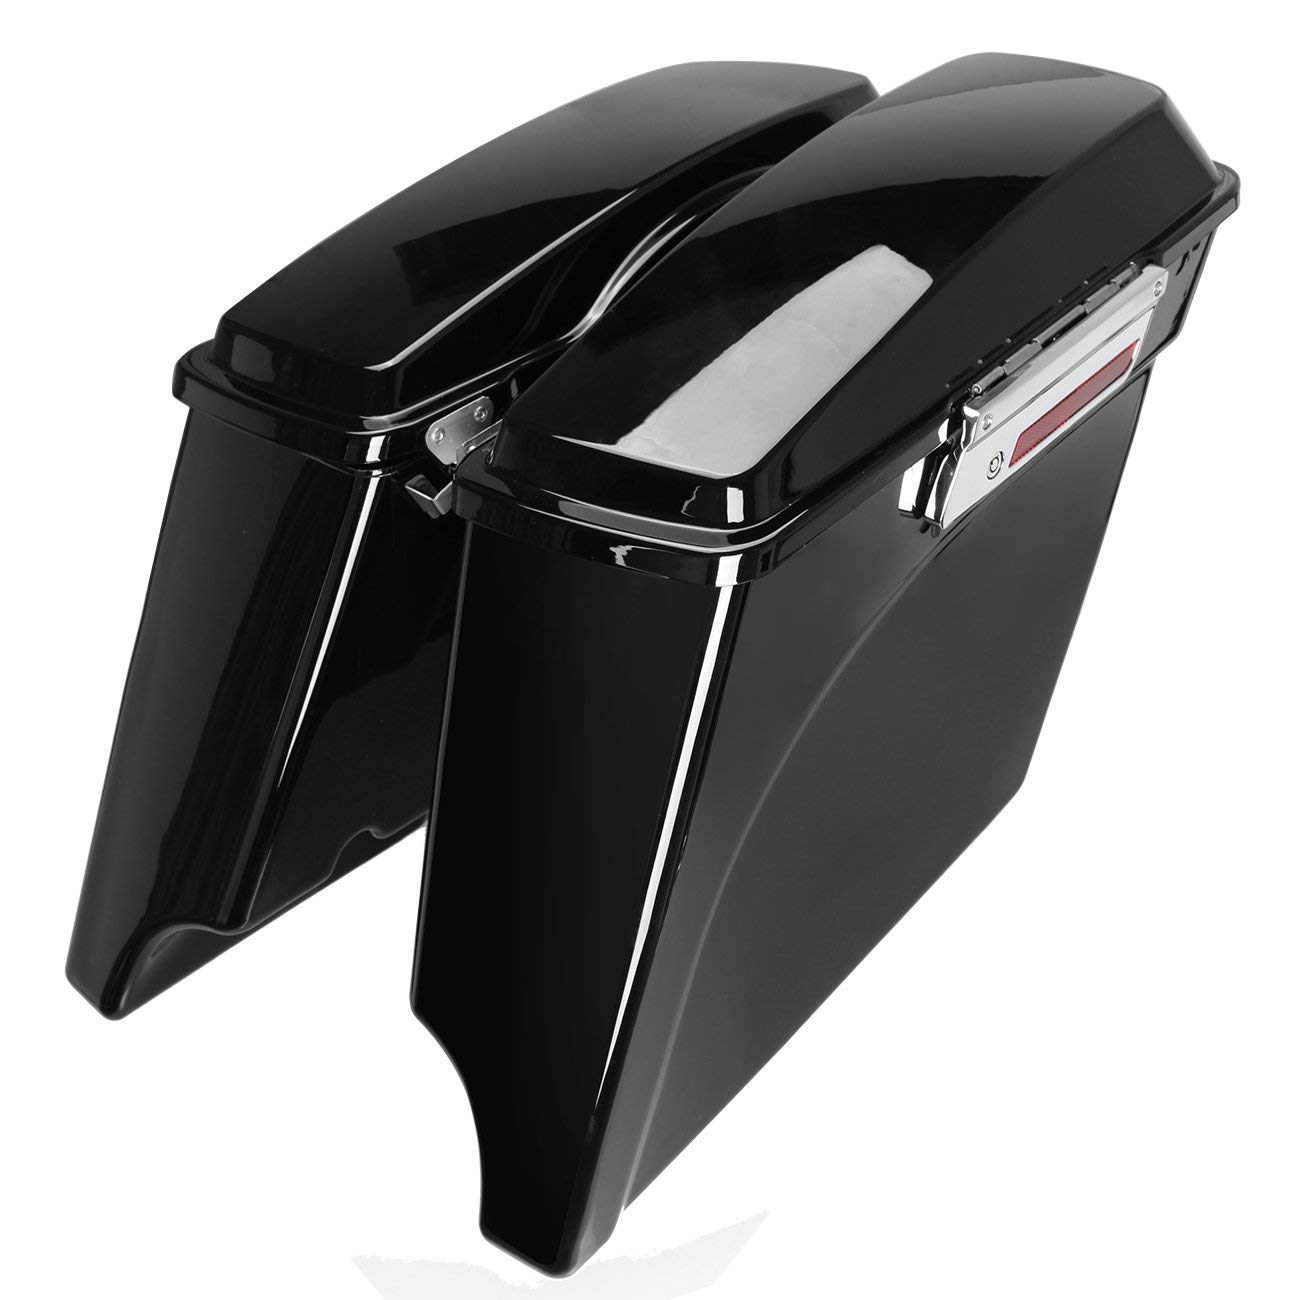 Triclicks Noir 5 Sacoches Rigides Prolong/és pour Harley Touring Electra Glide Street Glide Road King Road Glide Ultra Classic 1993-2013